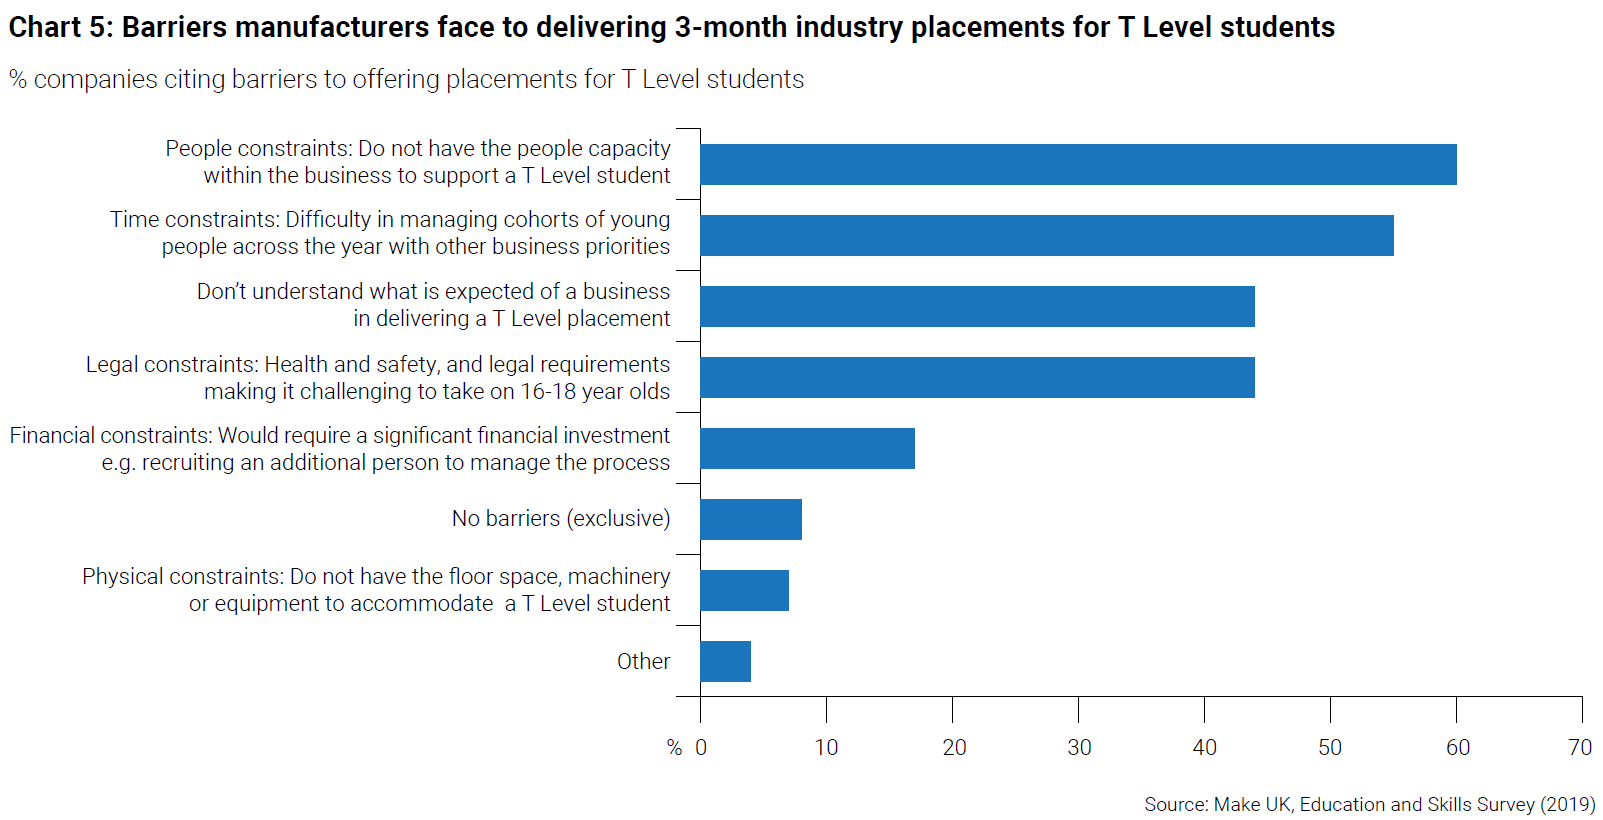 Manufacturers Barriers to T Levels Placements - Make UK